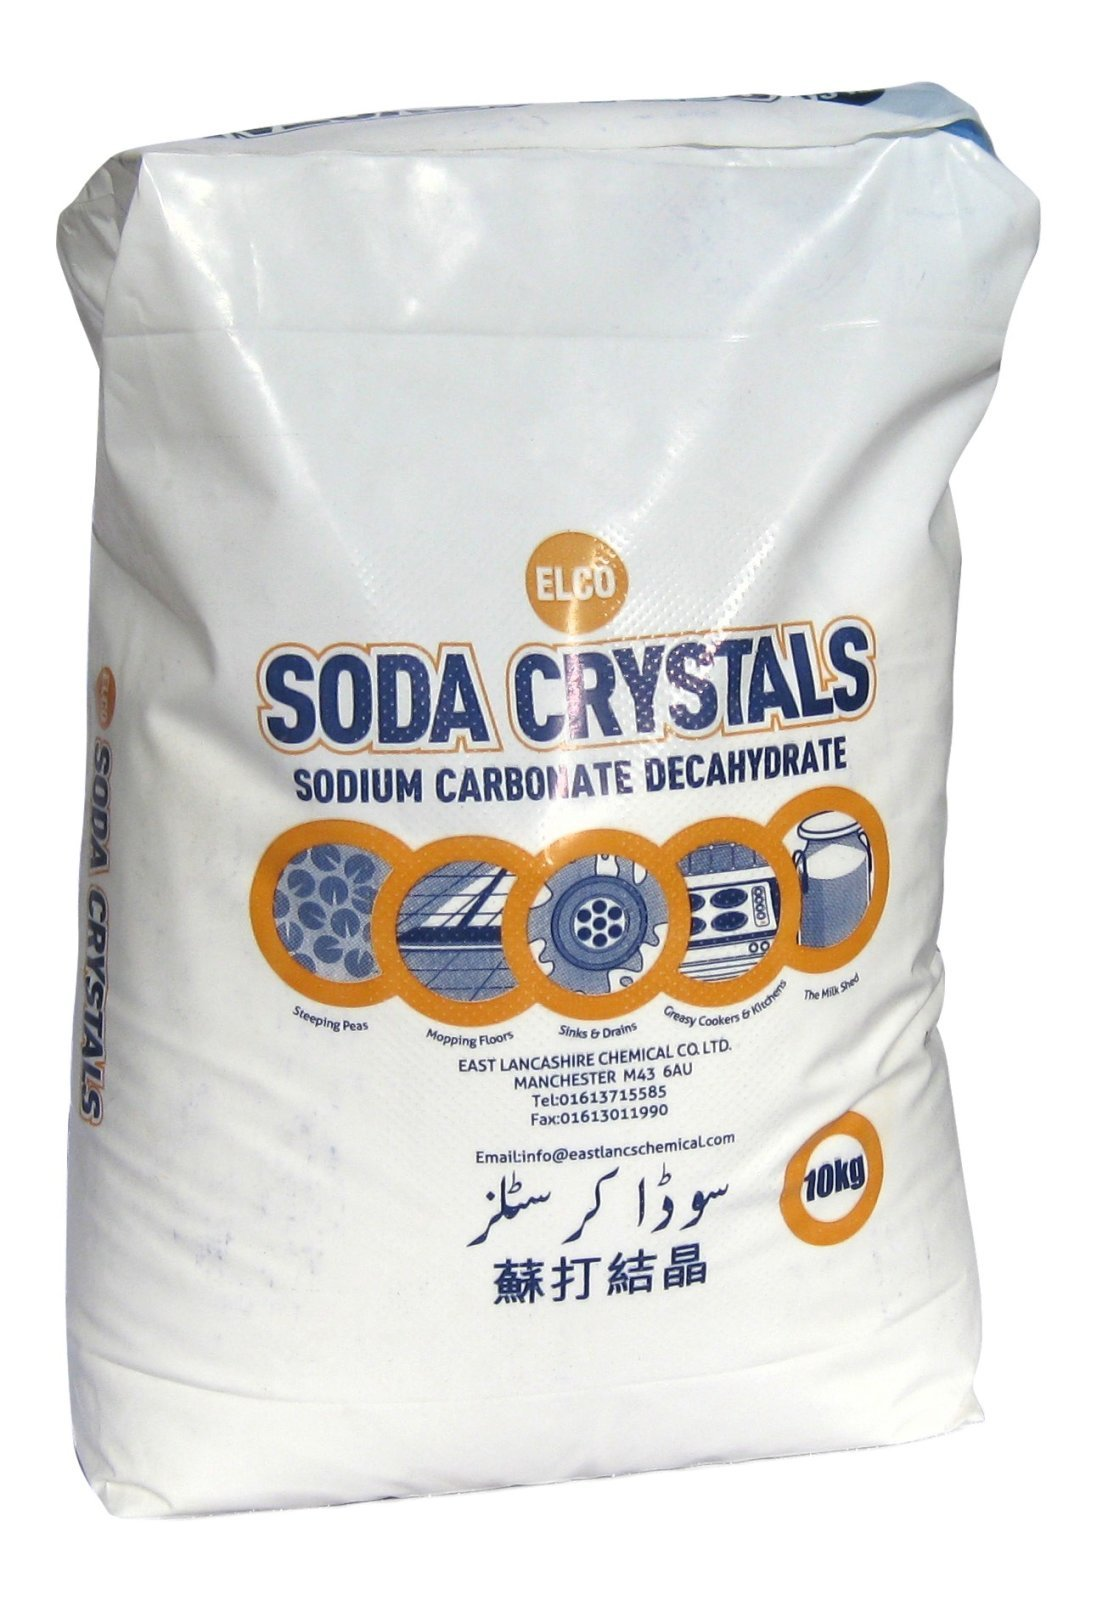 Picture of 10kg bag of ELCO Soda Crystals